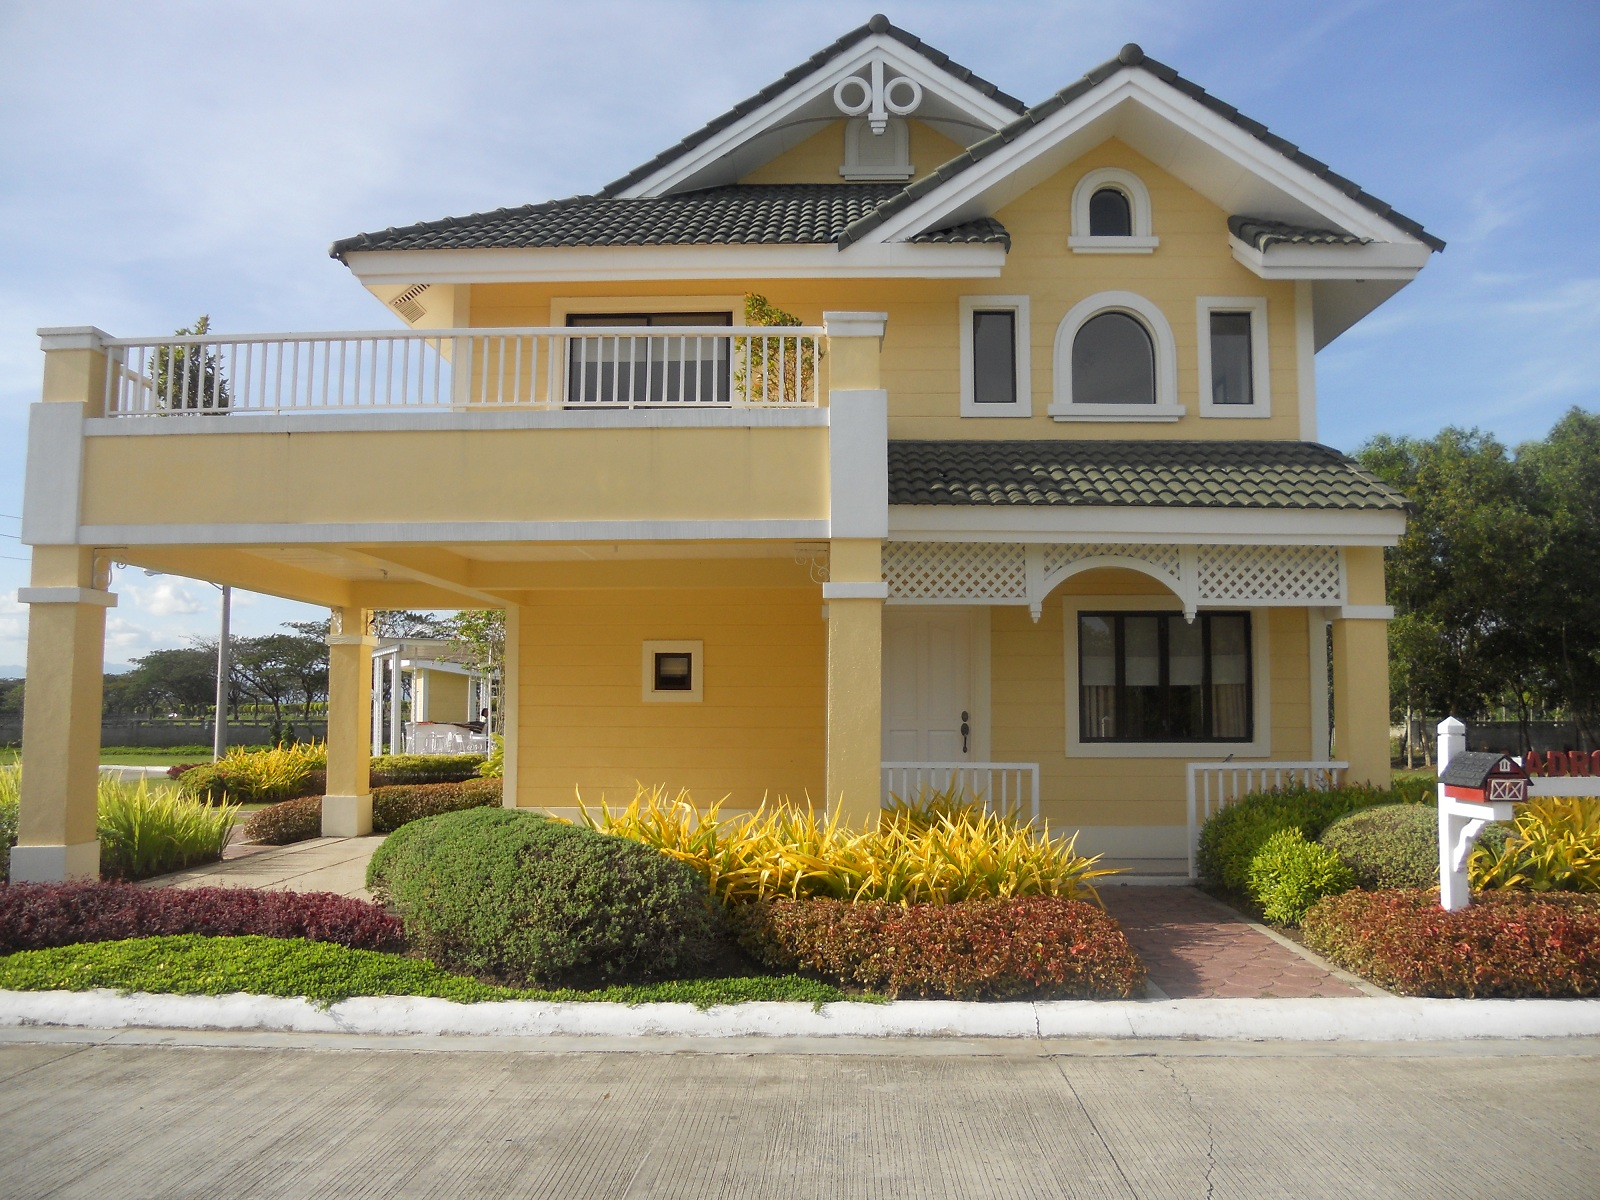 Savannah crest iloilo within savannah iloilo by camella for The model house